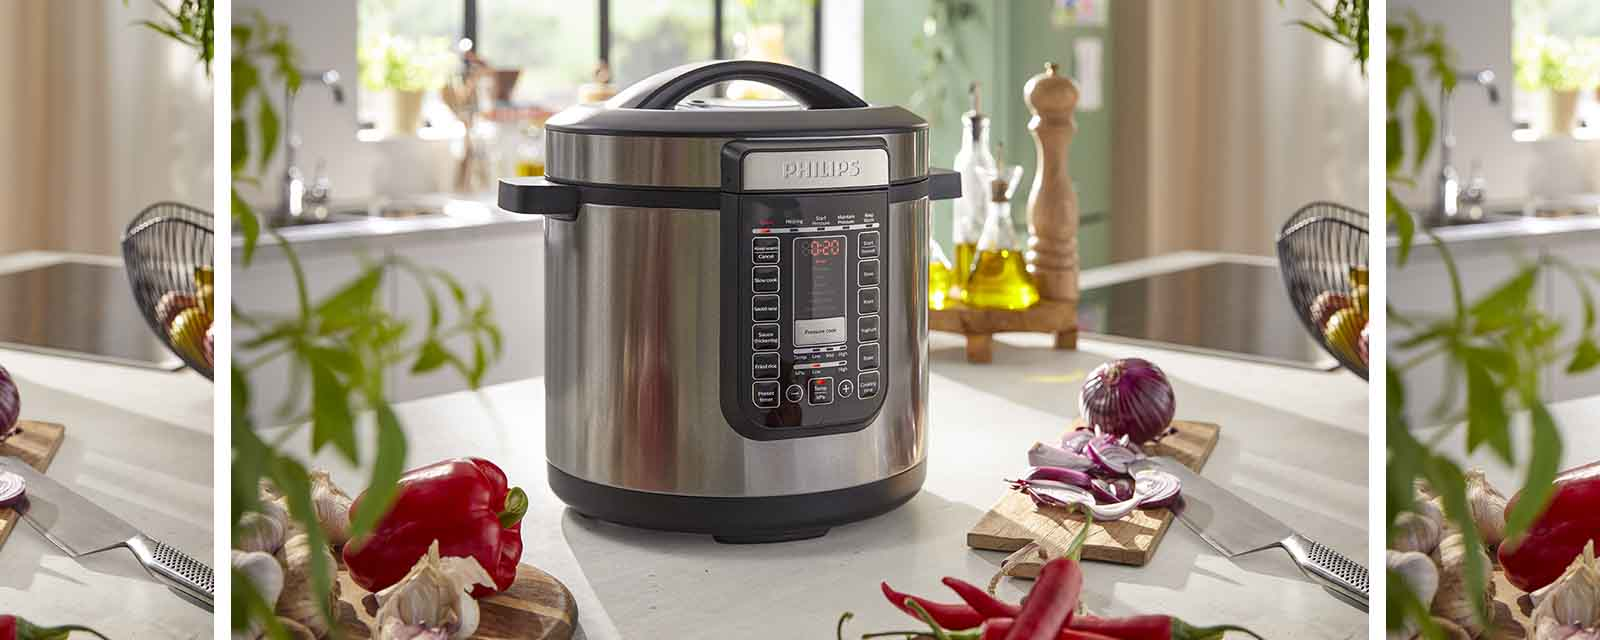 The Philips 8L All In One Cooker next to vegetables.